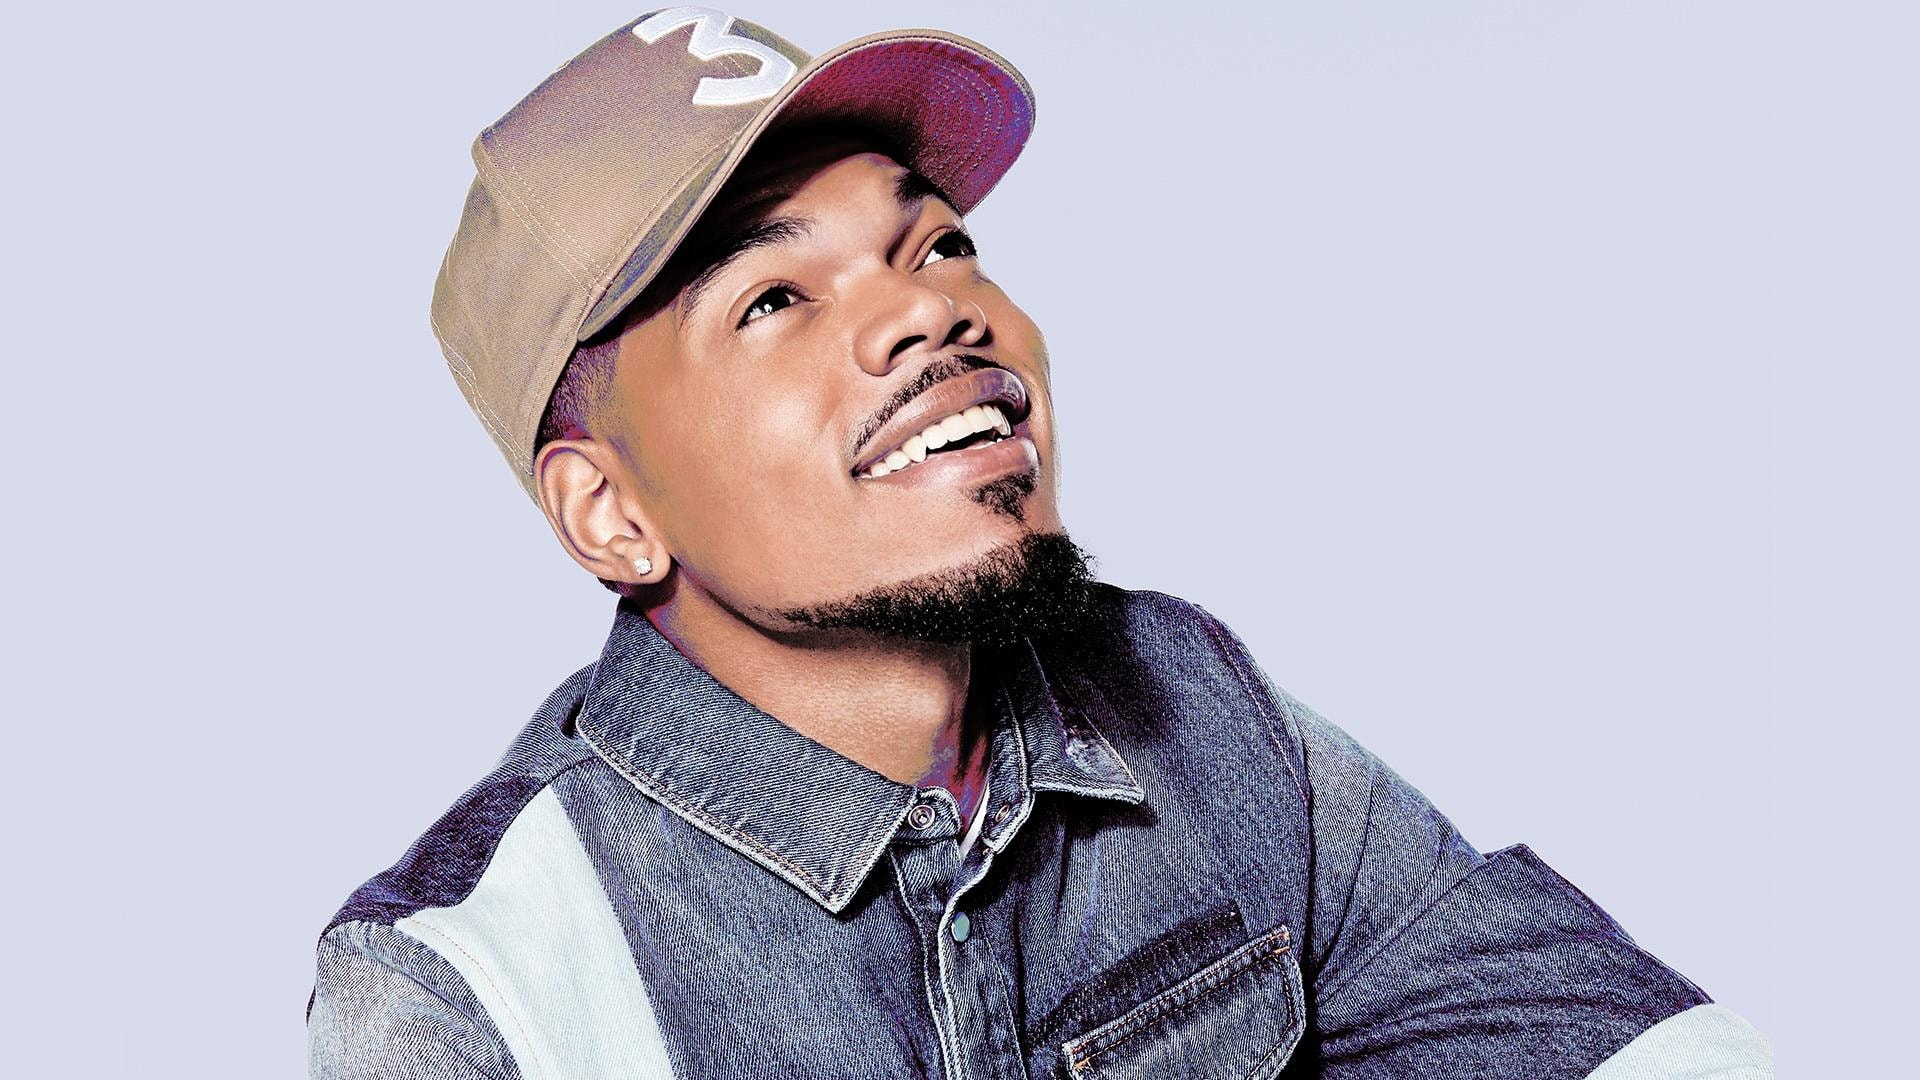 Chance the Rapper: October 26, 2019